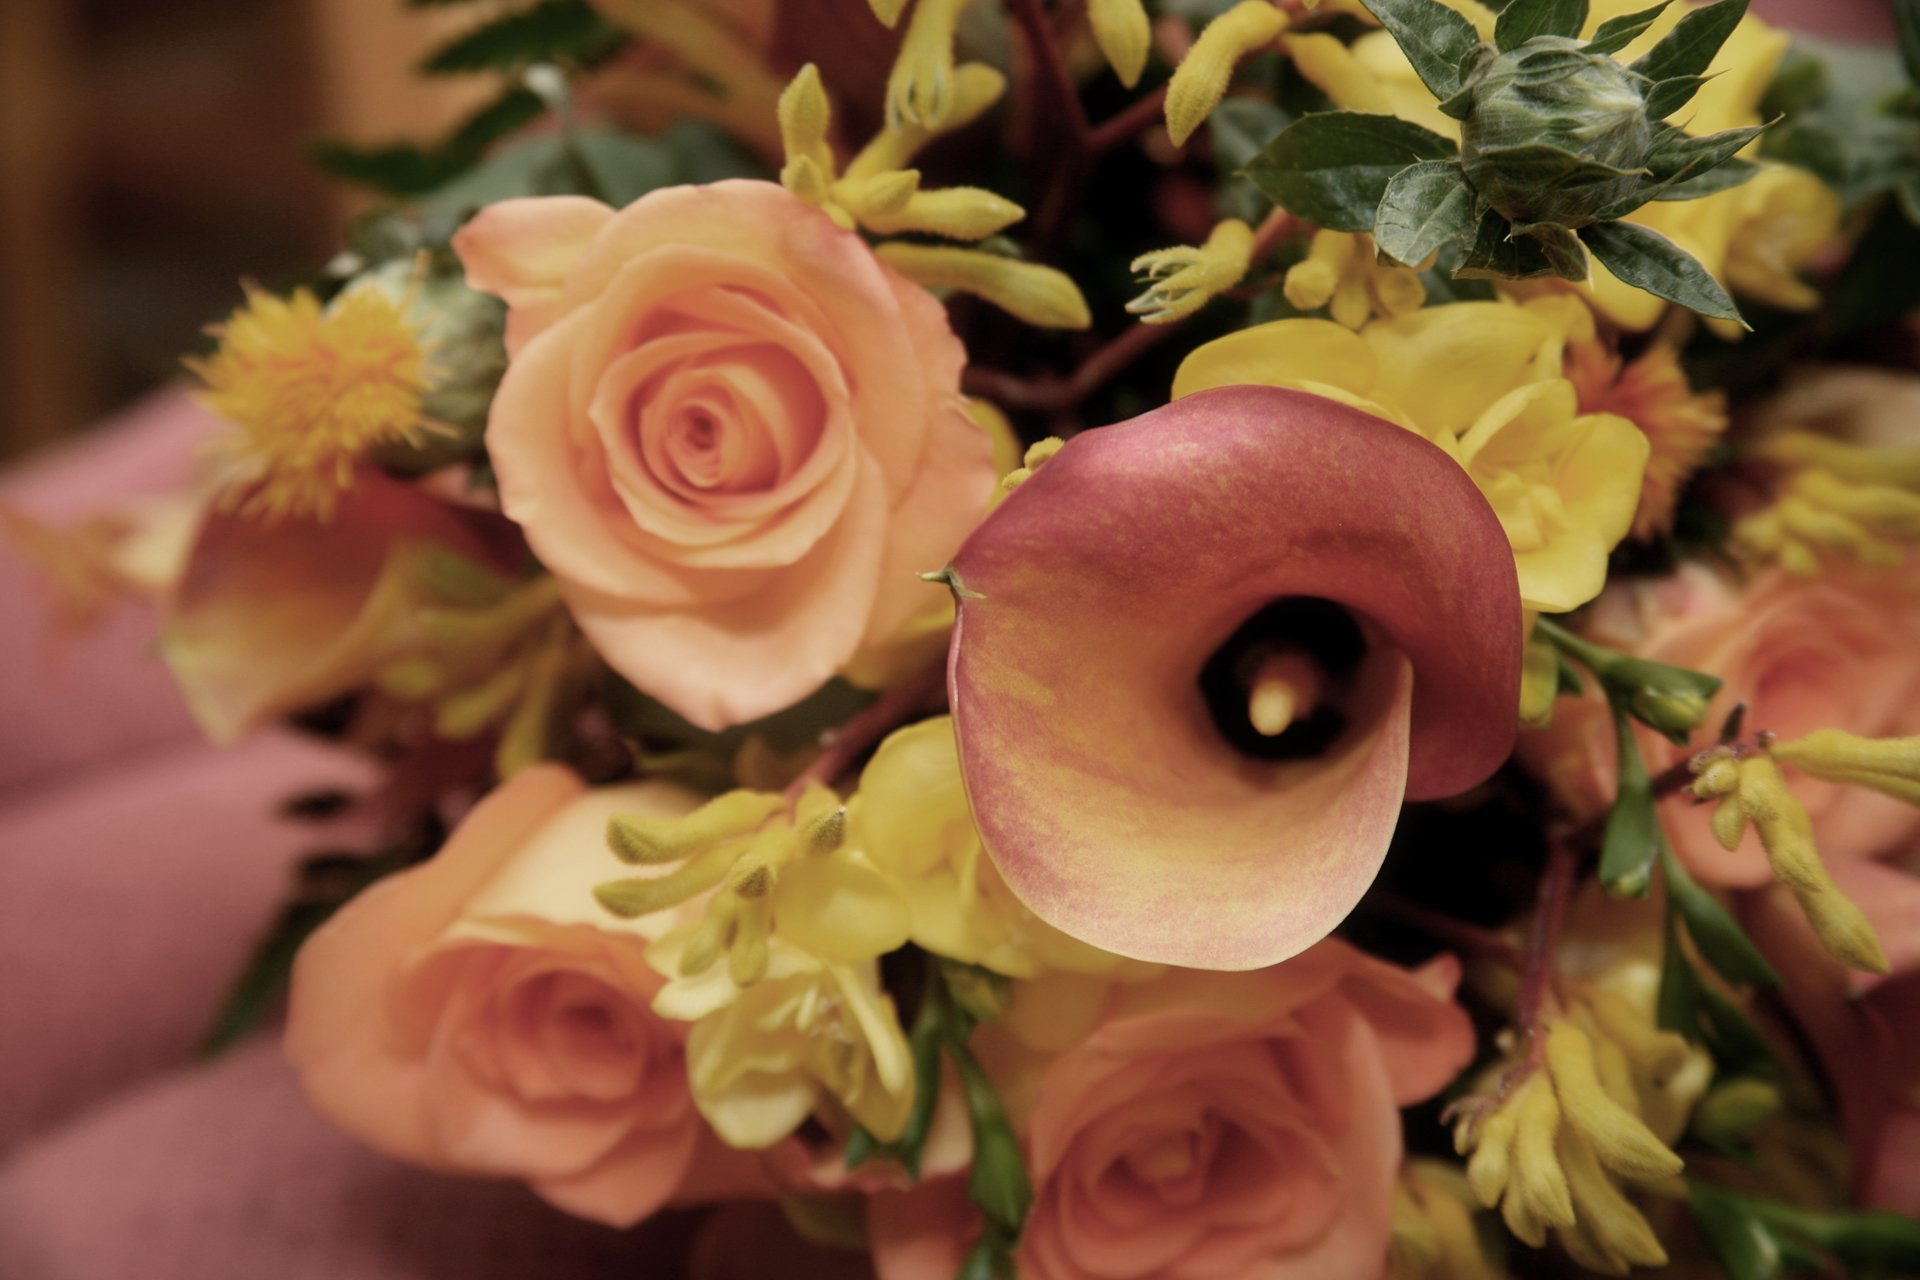 October wedding flower ideas - Flower PressFlower Press